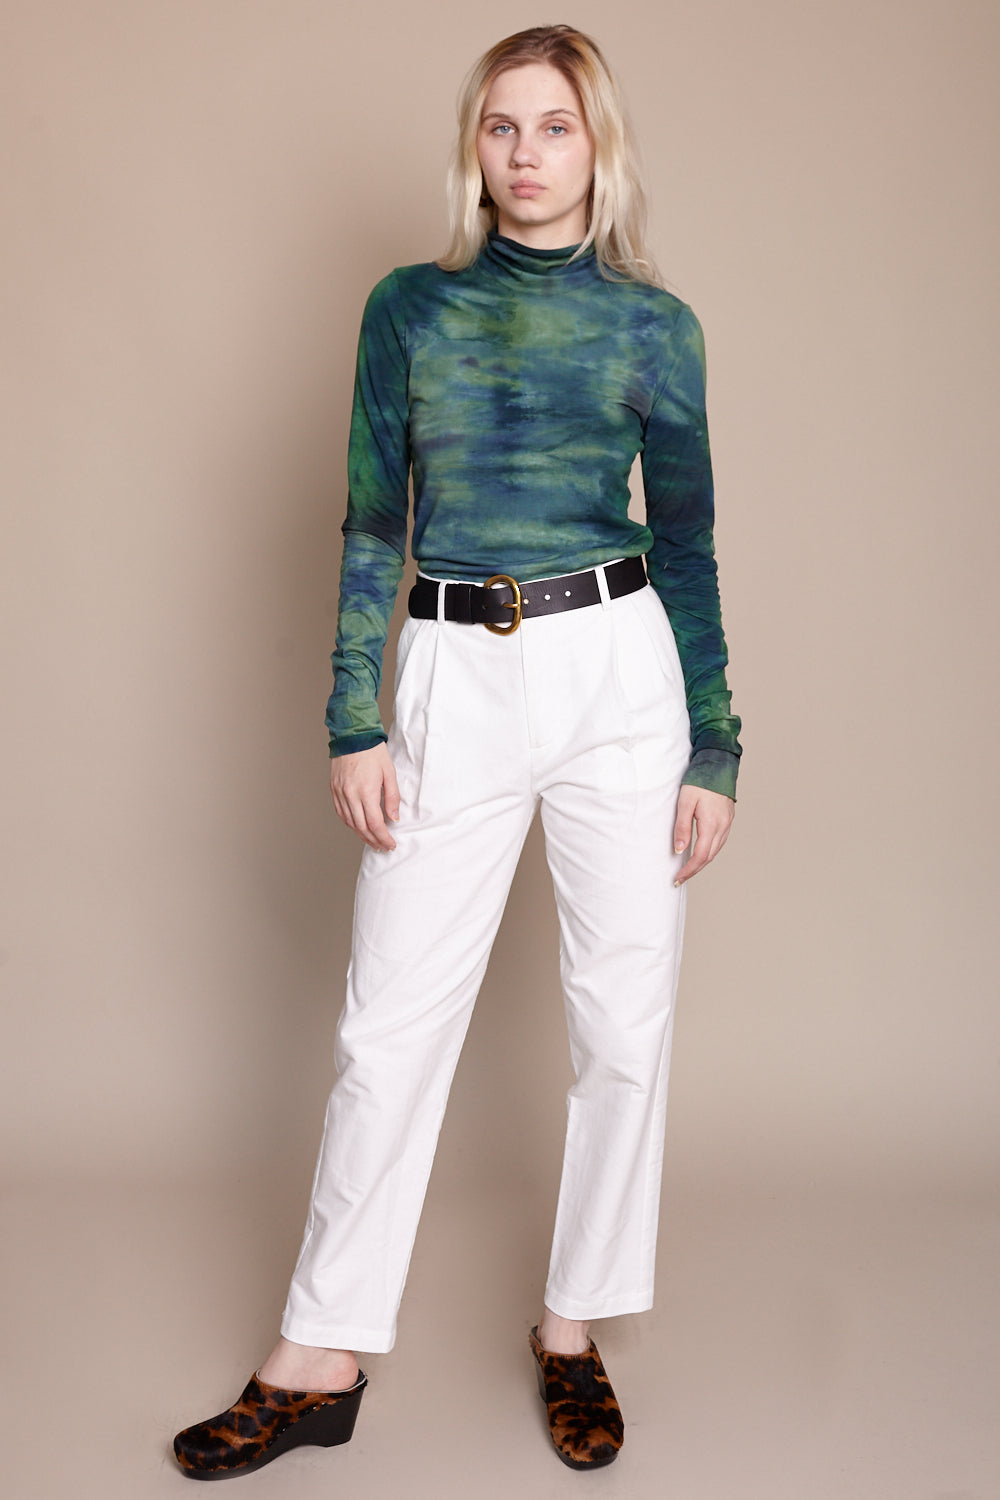 Long Sleeve Turtleneck in Jade Tie Dye